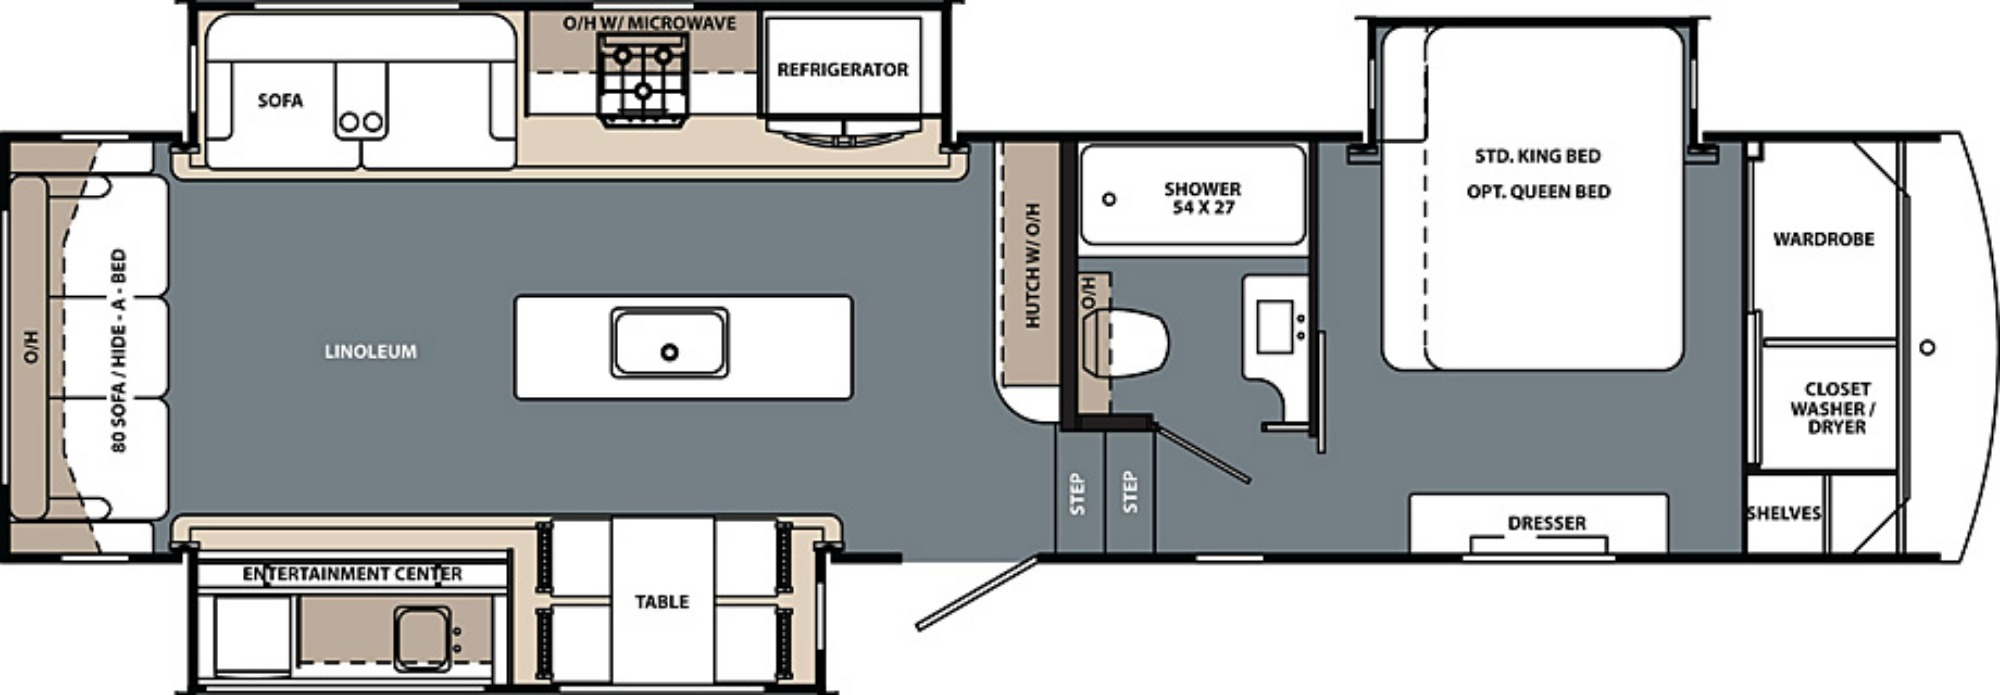 View Floor Plan for 2019 FOREST RIVER CARDINAL LIMITED 3200RLLE